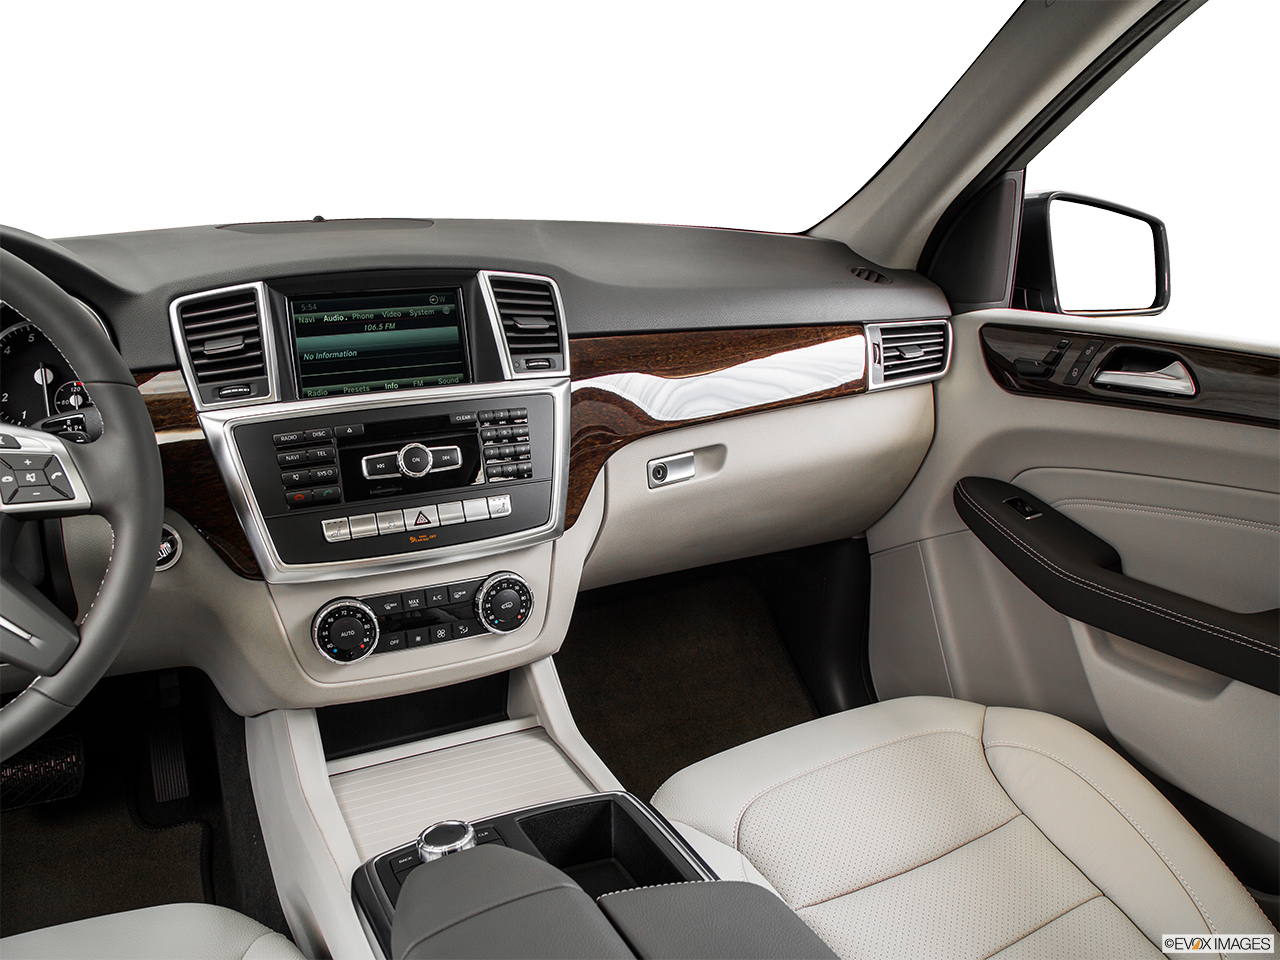 2015 Mercedes-Benz M-Class 4MATIC ML350 - Front angle